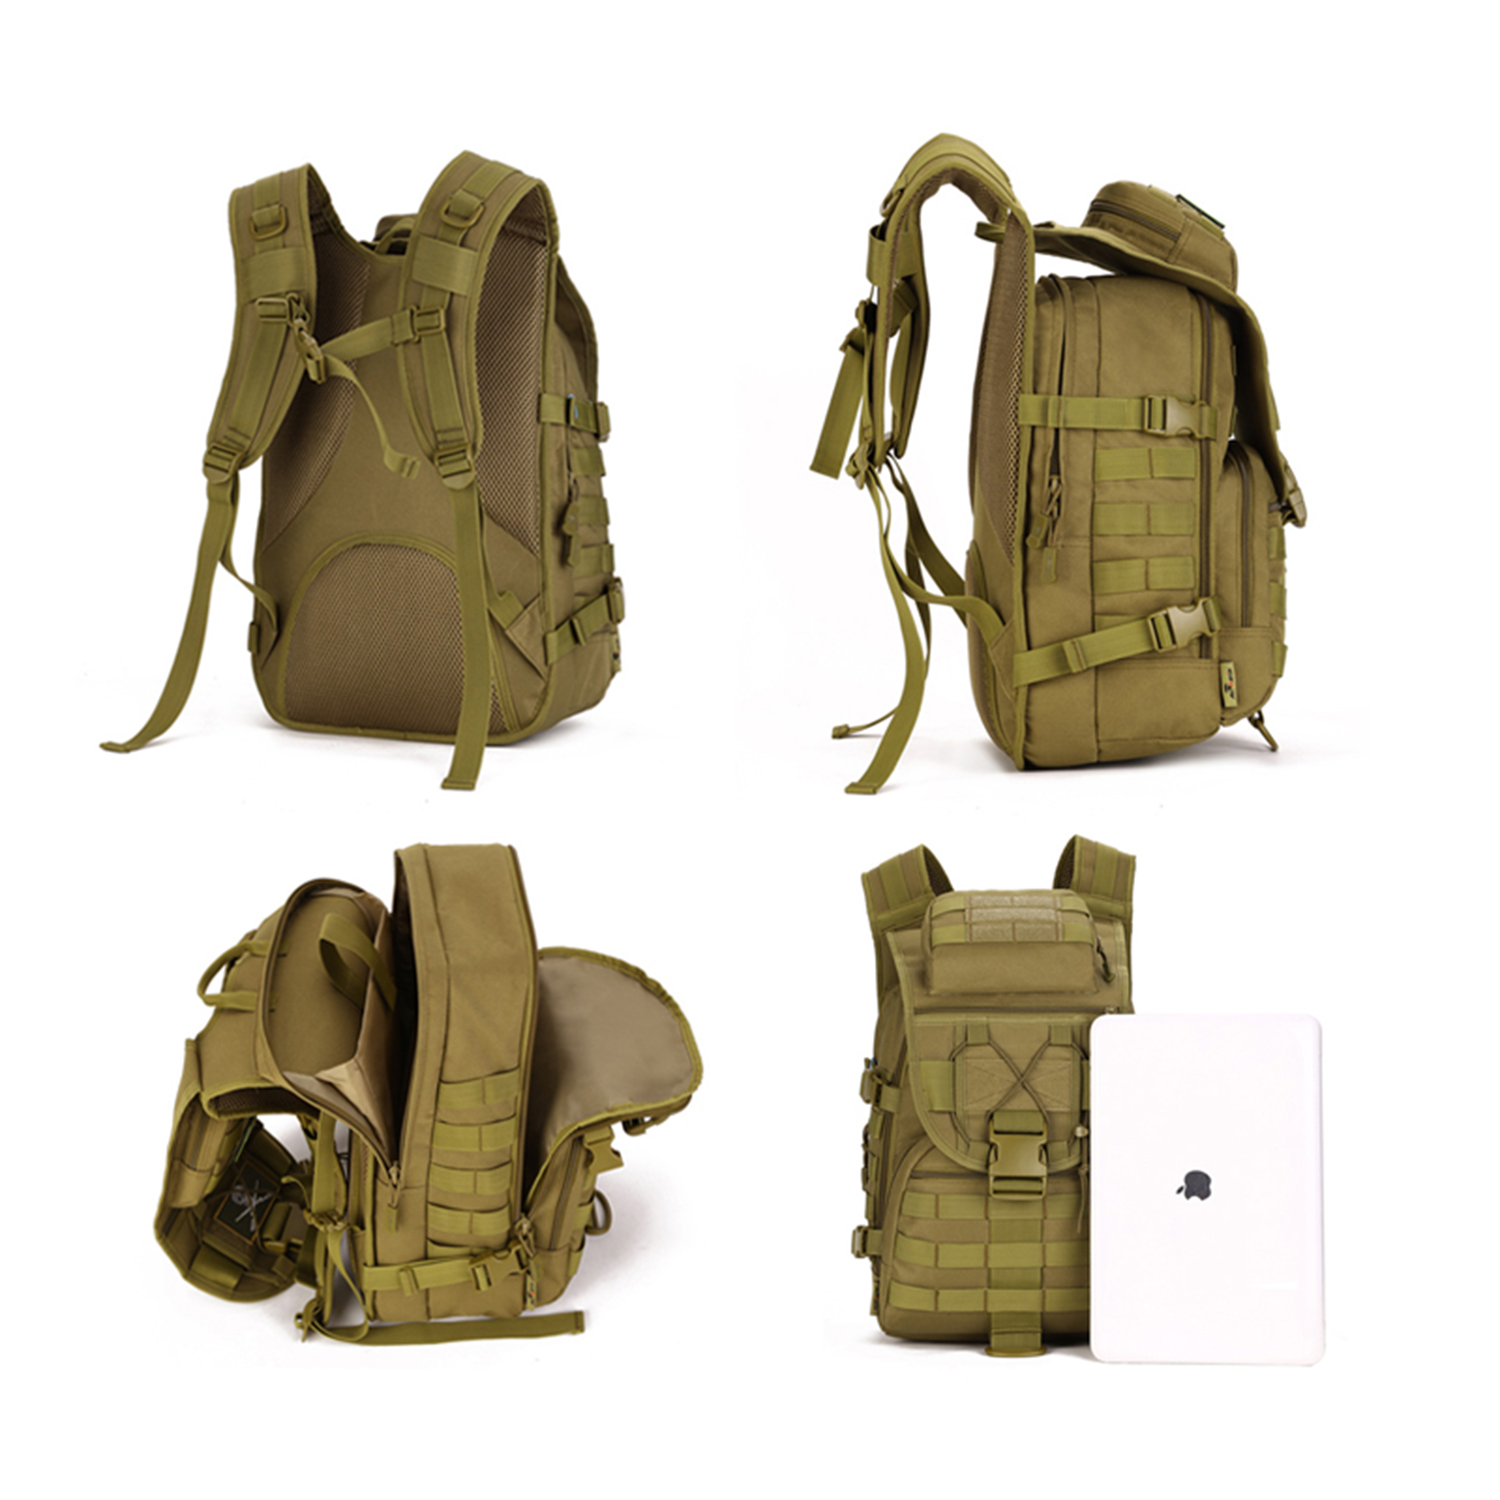 40L-Military-Tactical-Backpack-Assault-Pack-MOLLE-Bug-Out-Bag-Army-Backpack-Trek thumbnail 19